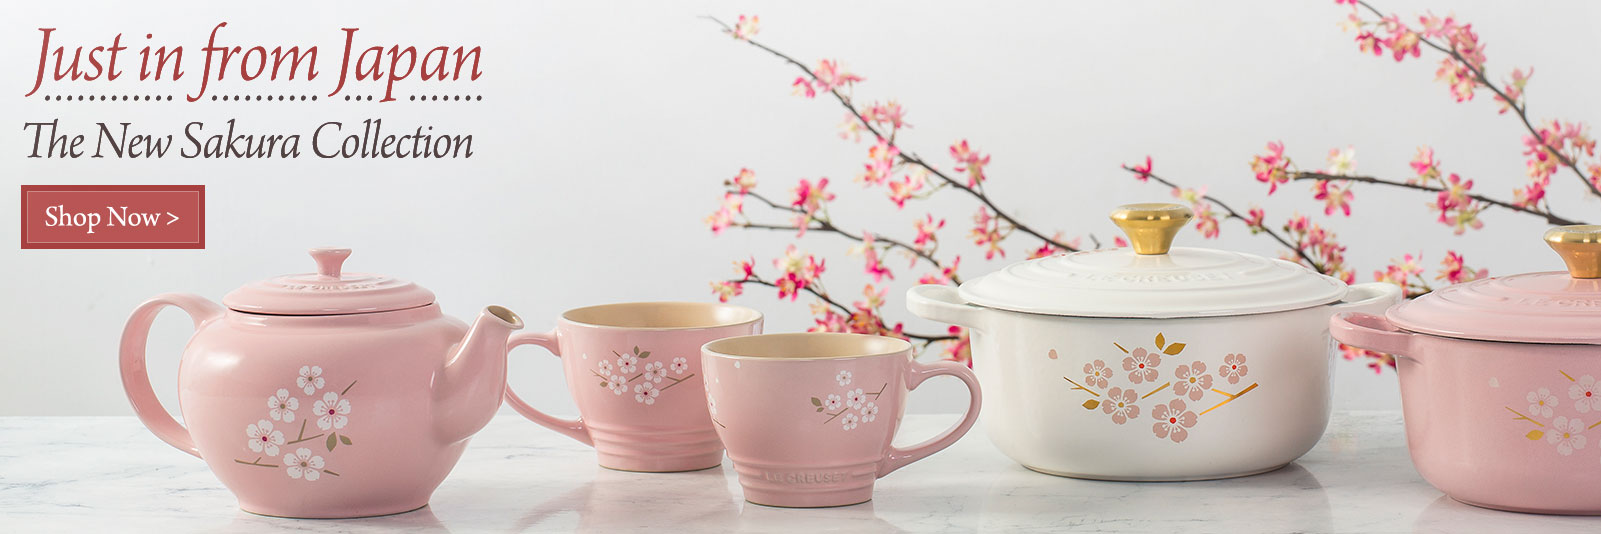 Just in from Japans - the new Sakura Collection